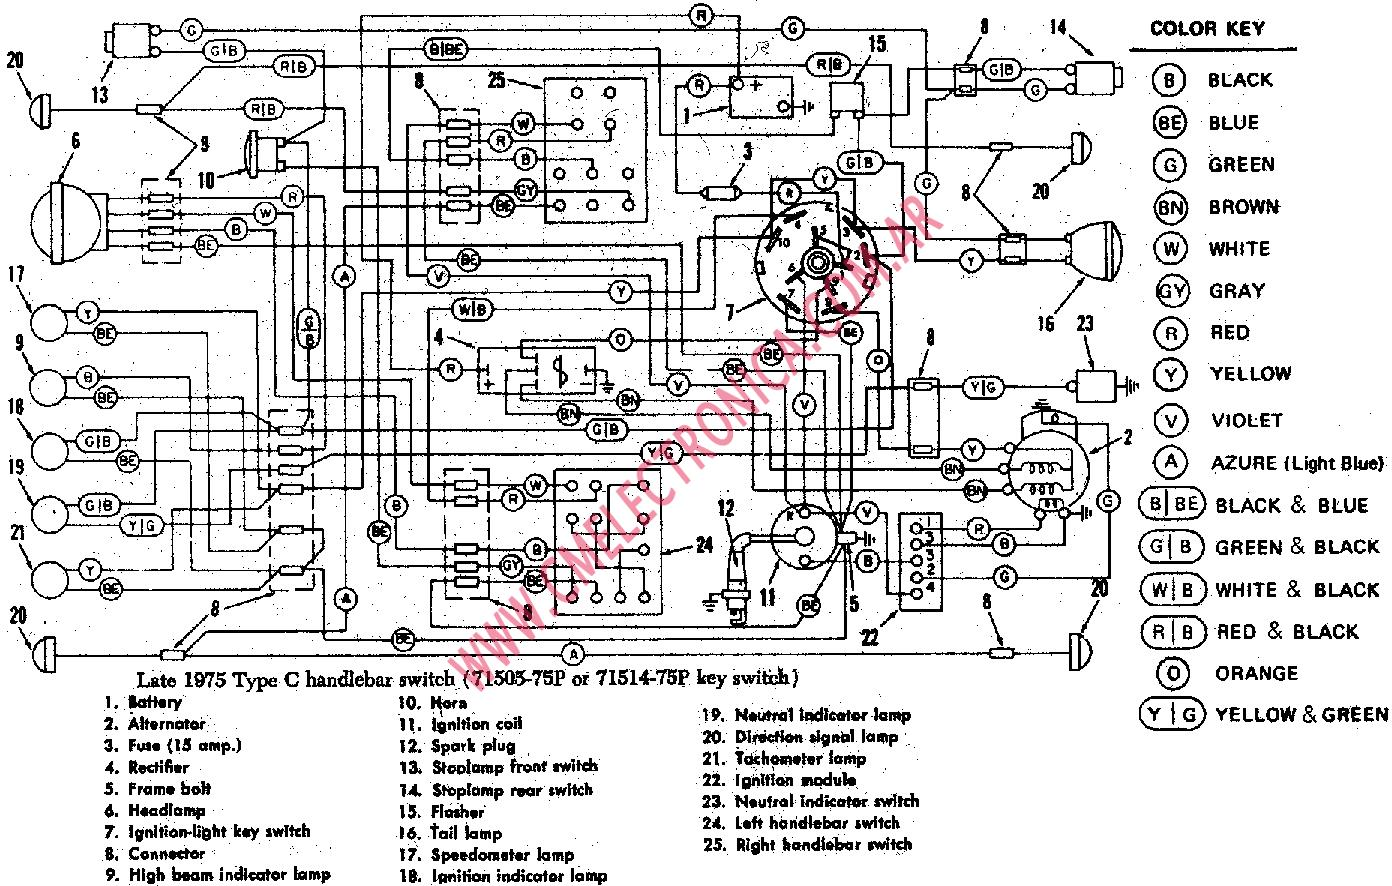 ultima wiring harness for harley installing wire harness